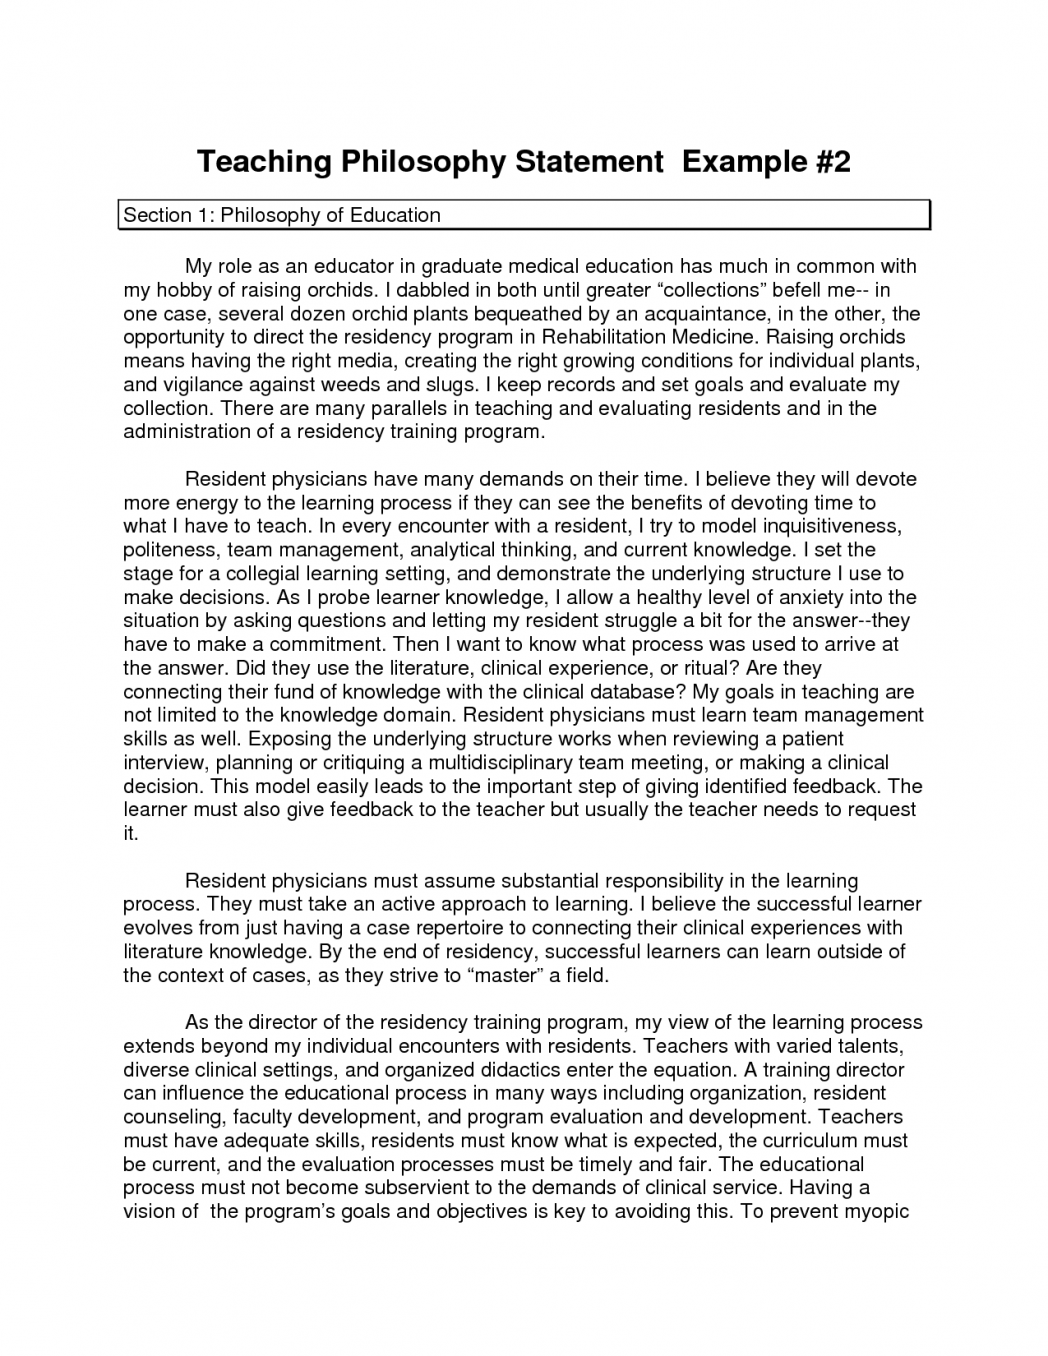 007 Exploratory Essay Example Definition Writing An Introduction Examples Statement Of Teaching Philosophy Mg5 Free Thesis Topics Research Remarkable Analysis Full